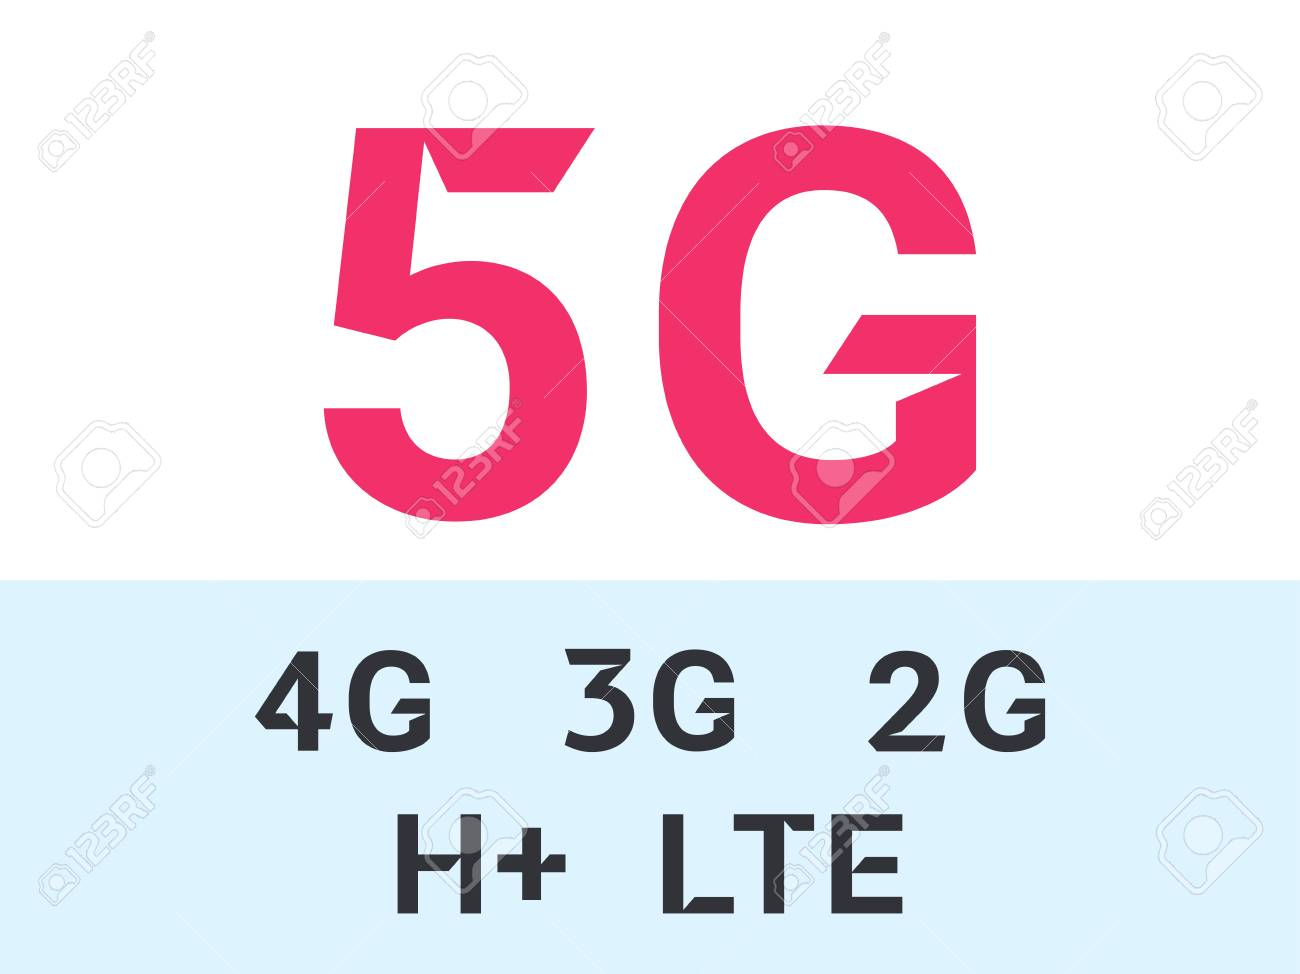 5G internet network vector logos for high speed LTE 4G, 3G or